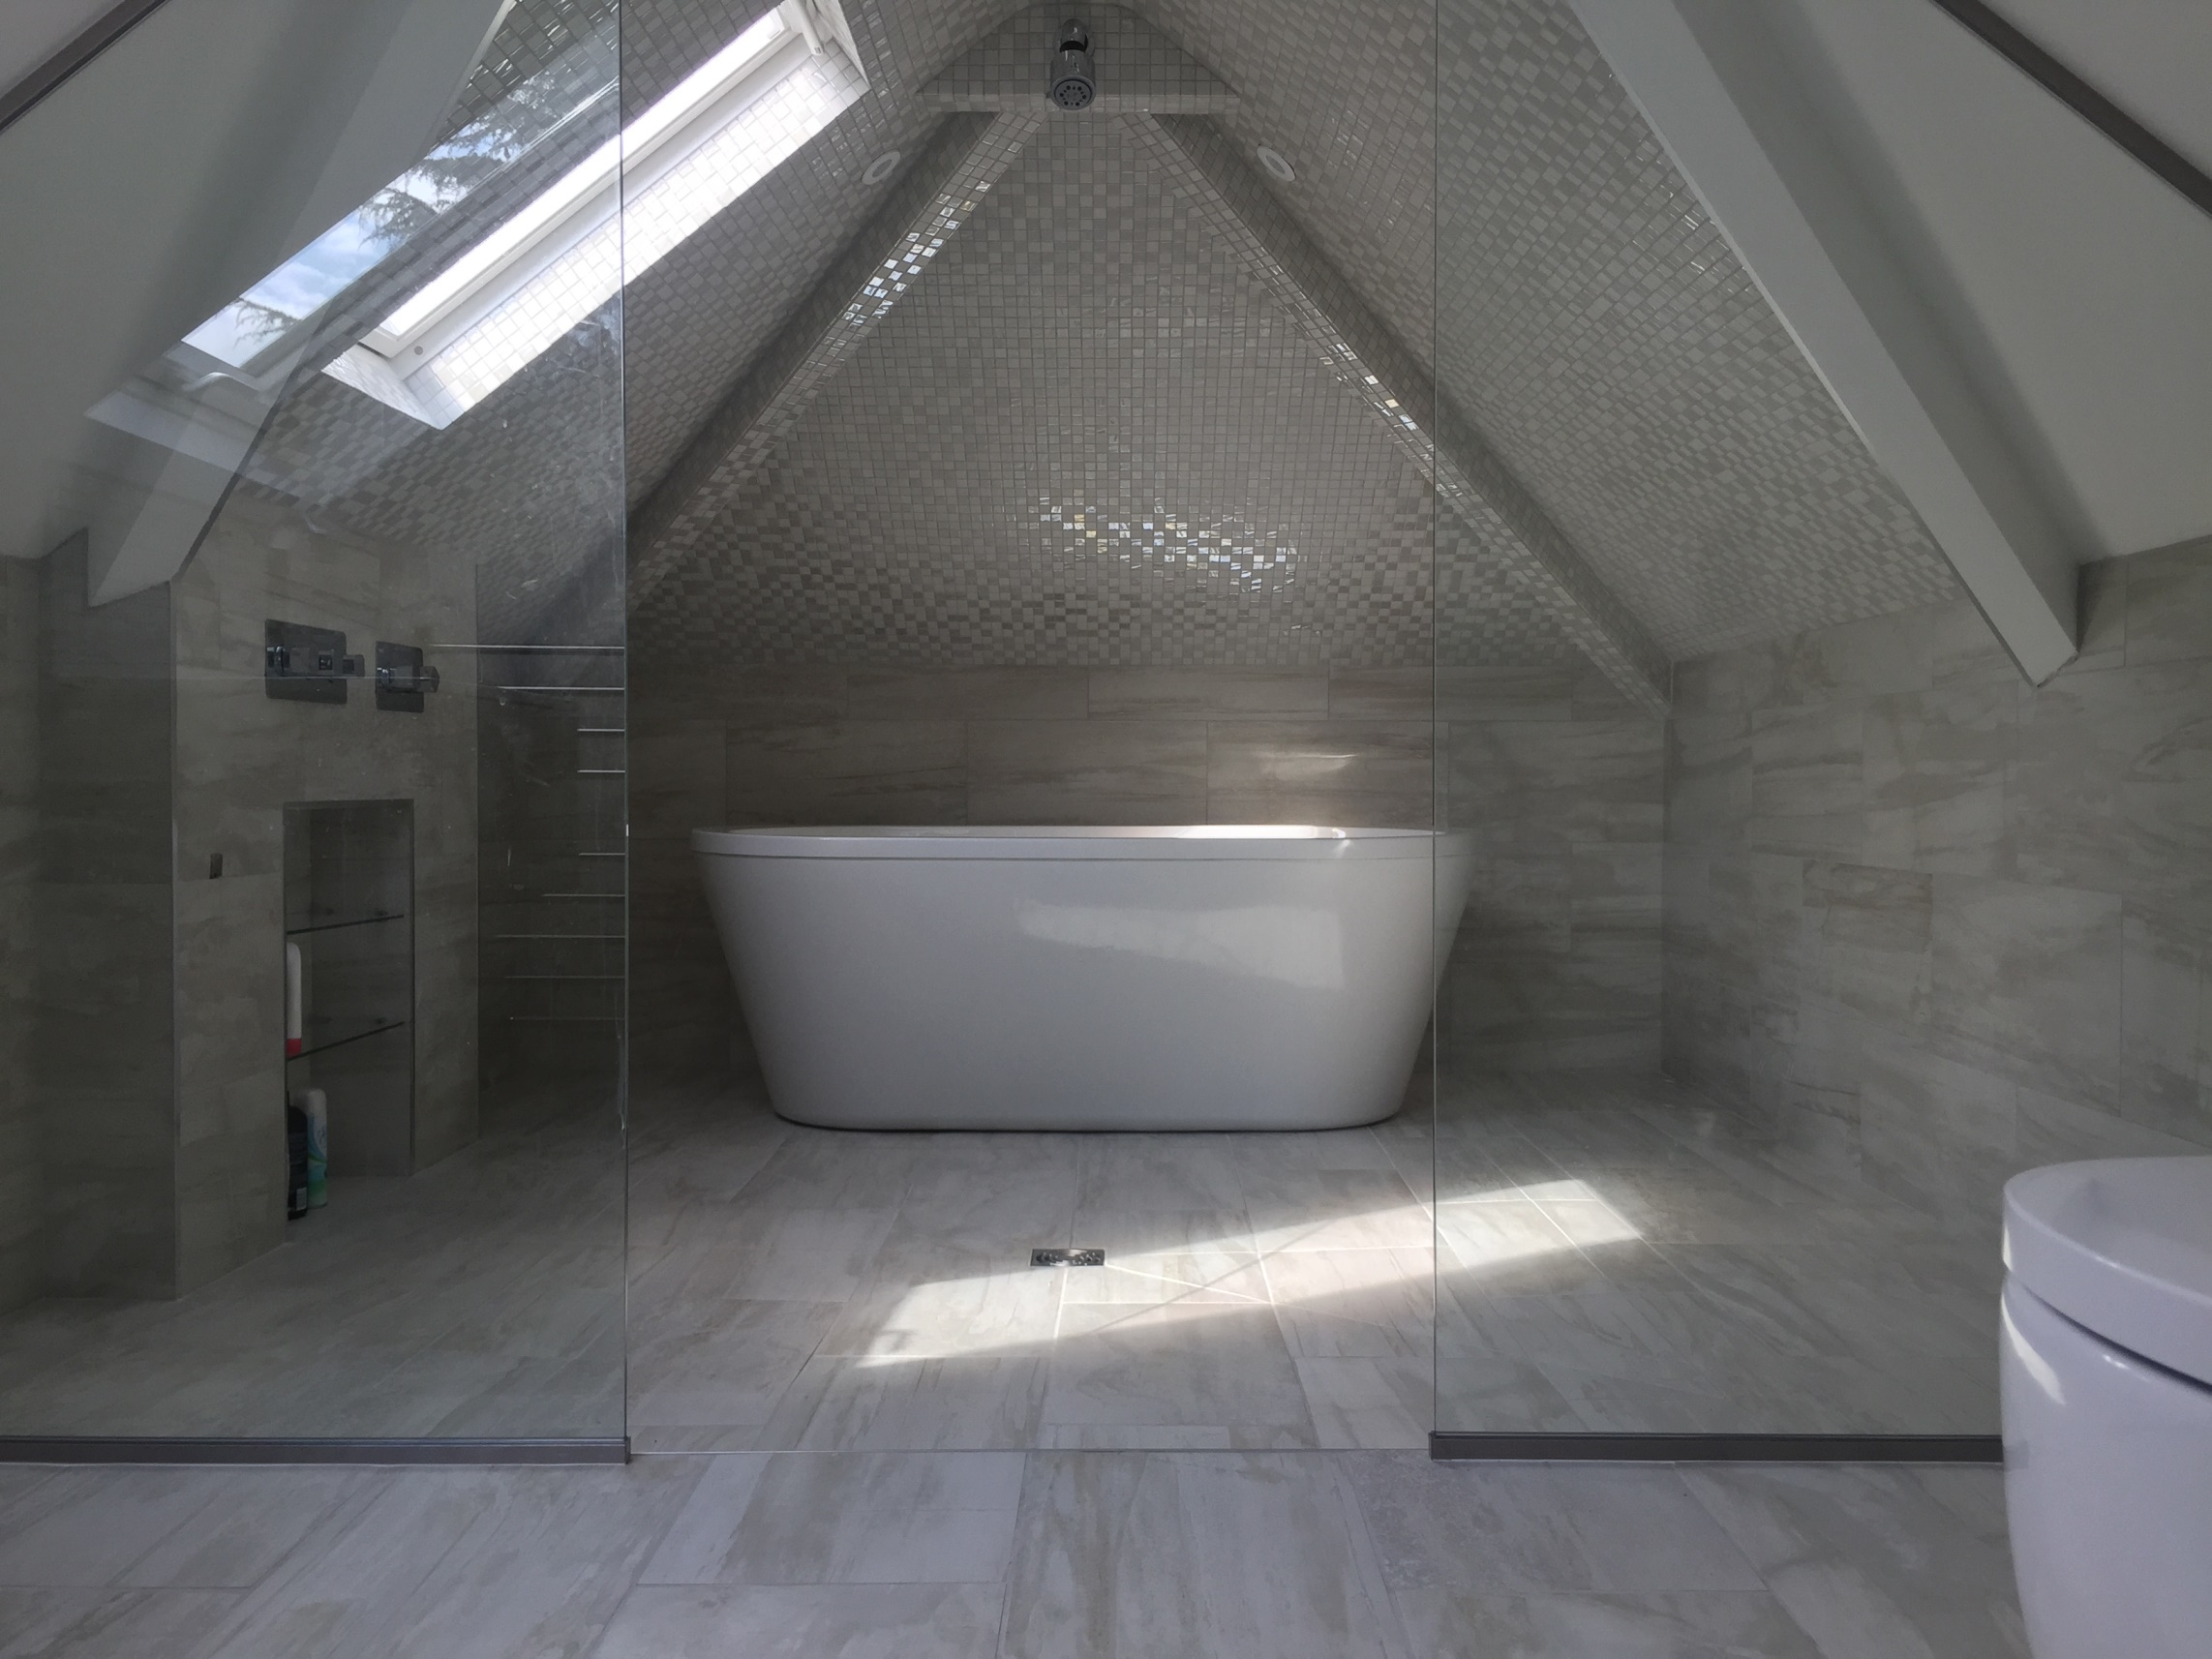 Hale Guest Ensuite Stunning Mosiac Tiled Wetroom in Attic room